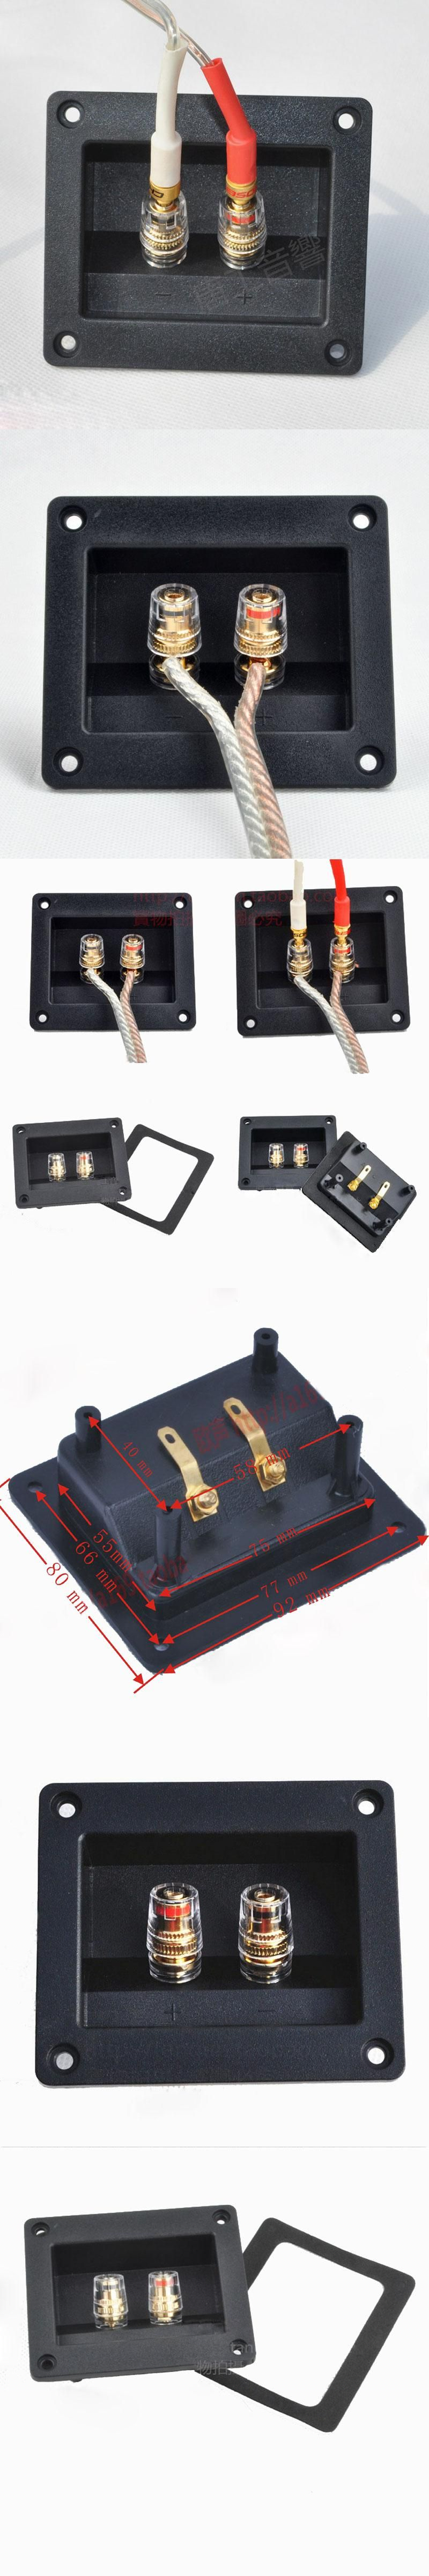 2pcshigh quality two speaker junction box connector speaker board 2pcshigh quality two speaker junction box connector speaker board audio accessories thickened audio wiring panel copper sciox Image collections